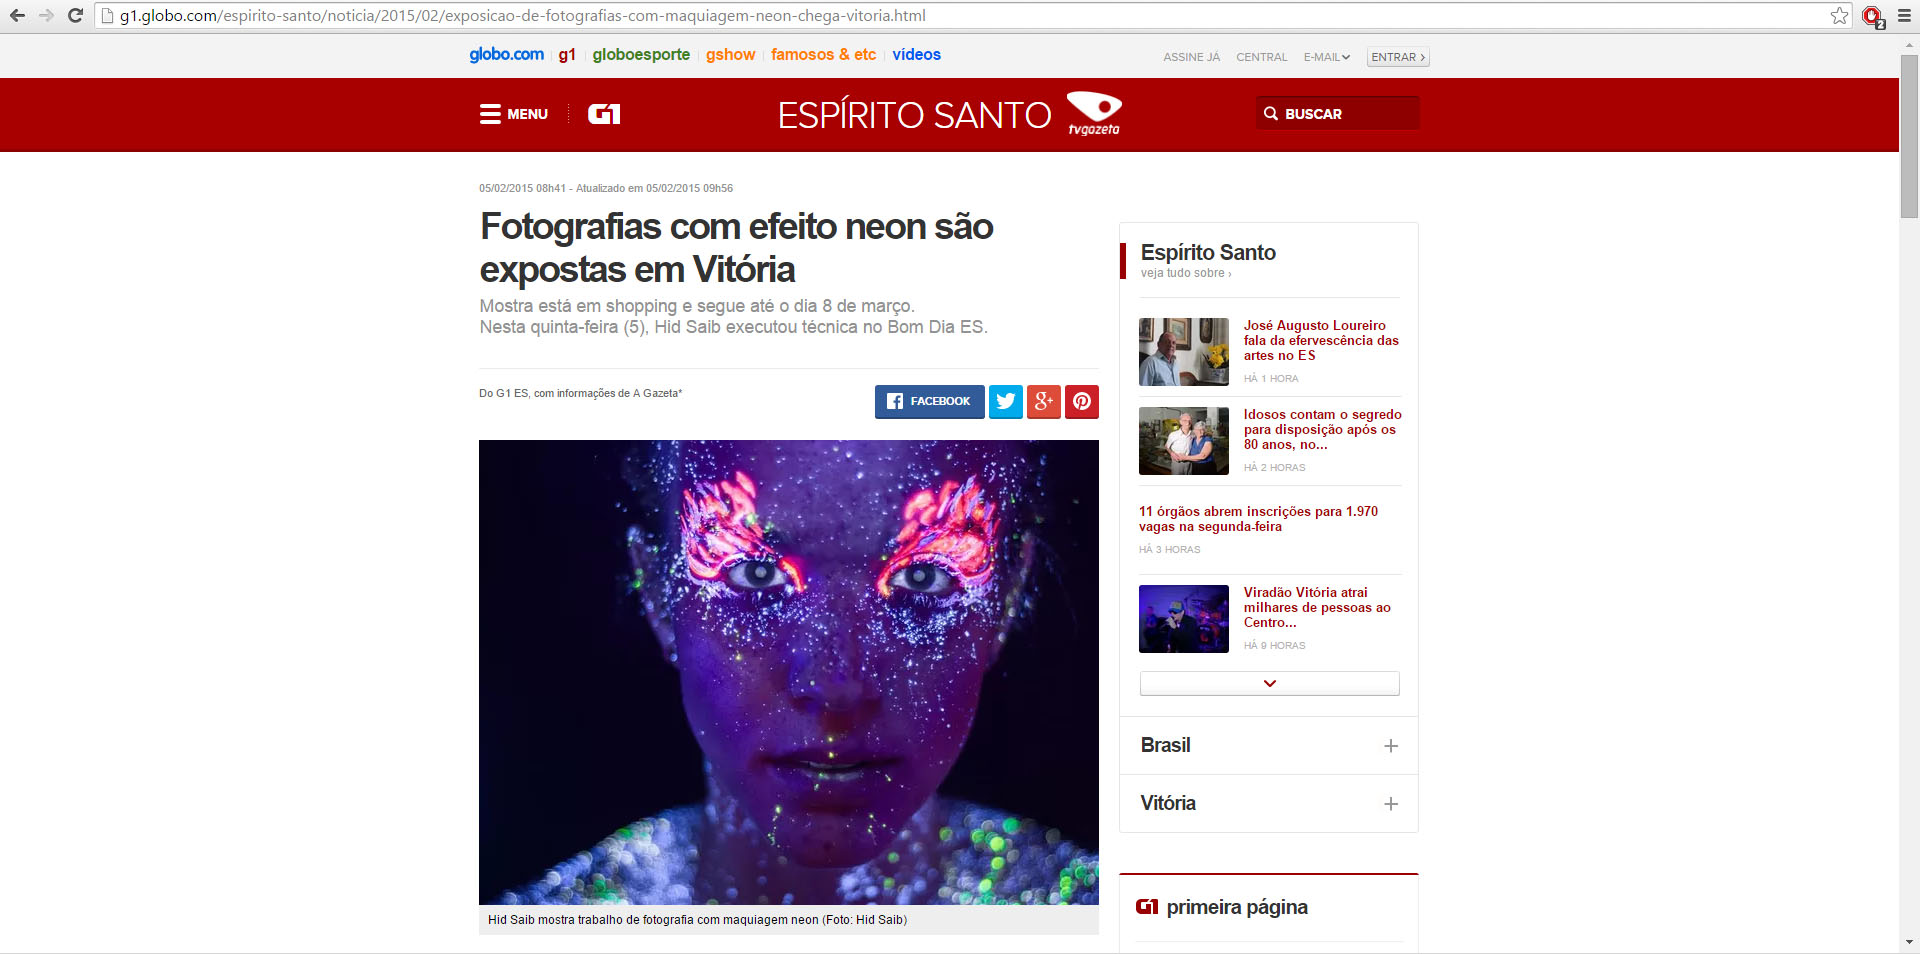 Neon no G1 - TV Gazeta